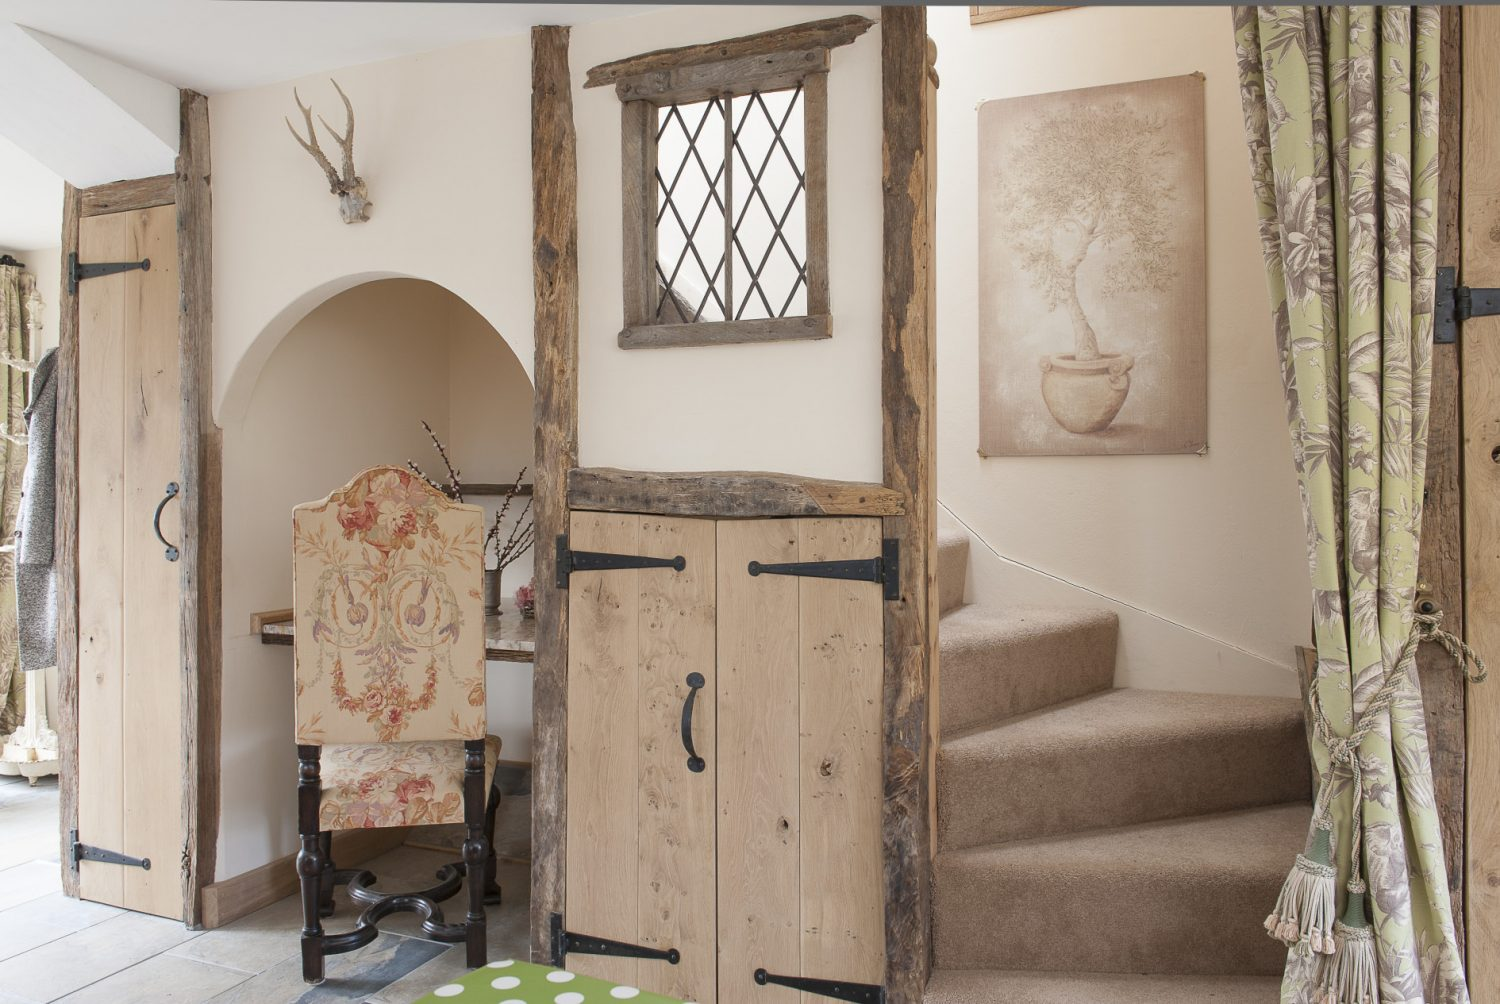 Caroline's 'medieval office wall'.A pink marble-topped desk has been fitted into an arched alcove and a leaded light illuminates the ascent upstairs